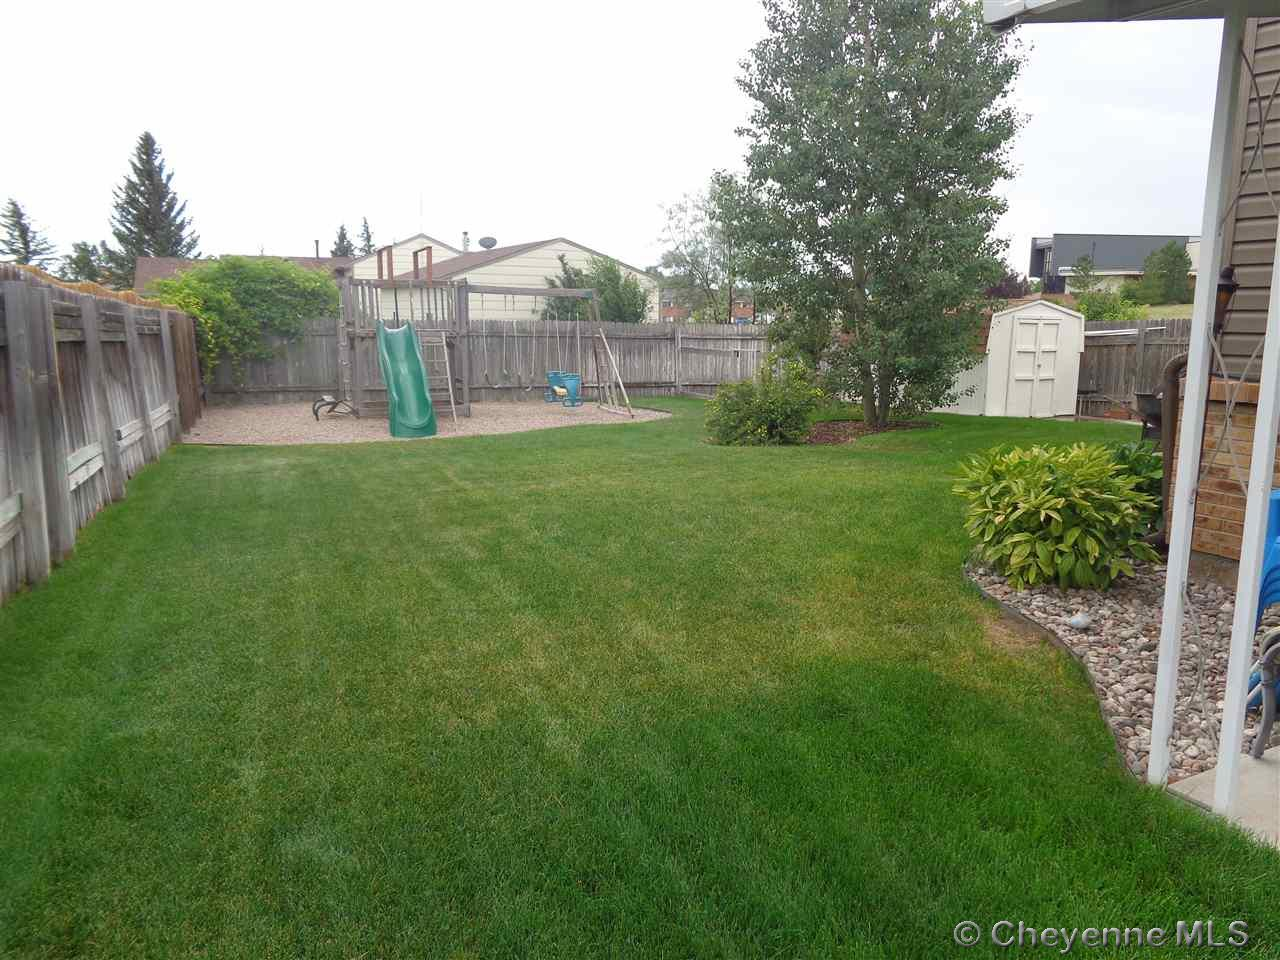 Additional photo for property listing at 5549 Chapel Hill Dr Cheyenne, Wyoming United States